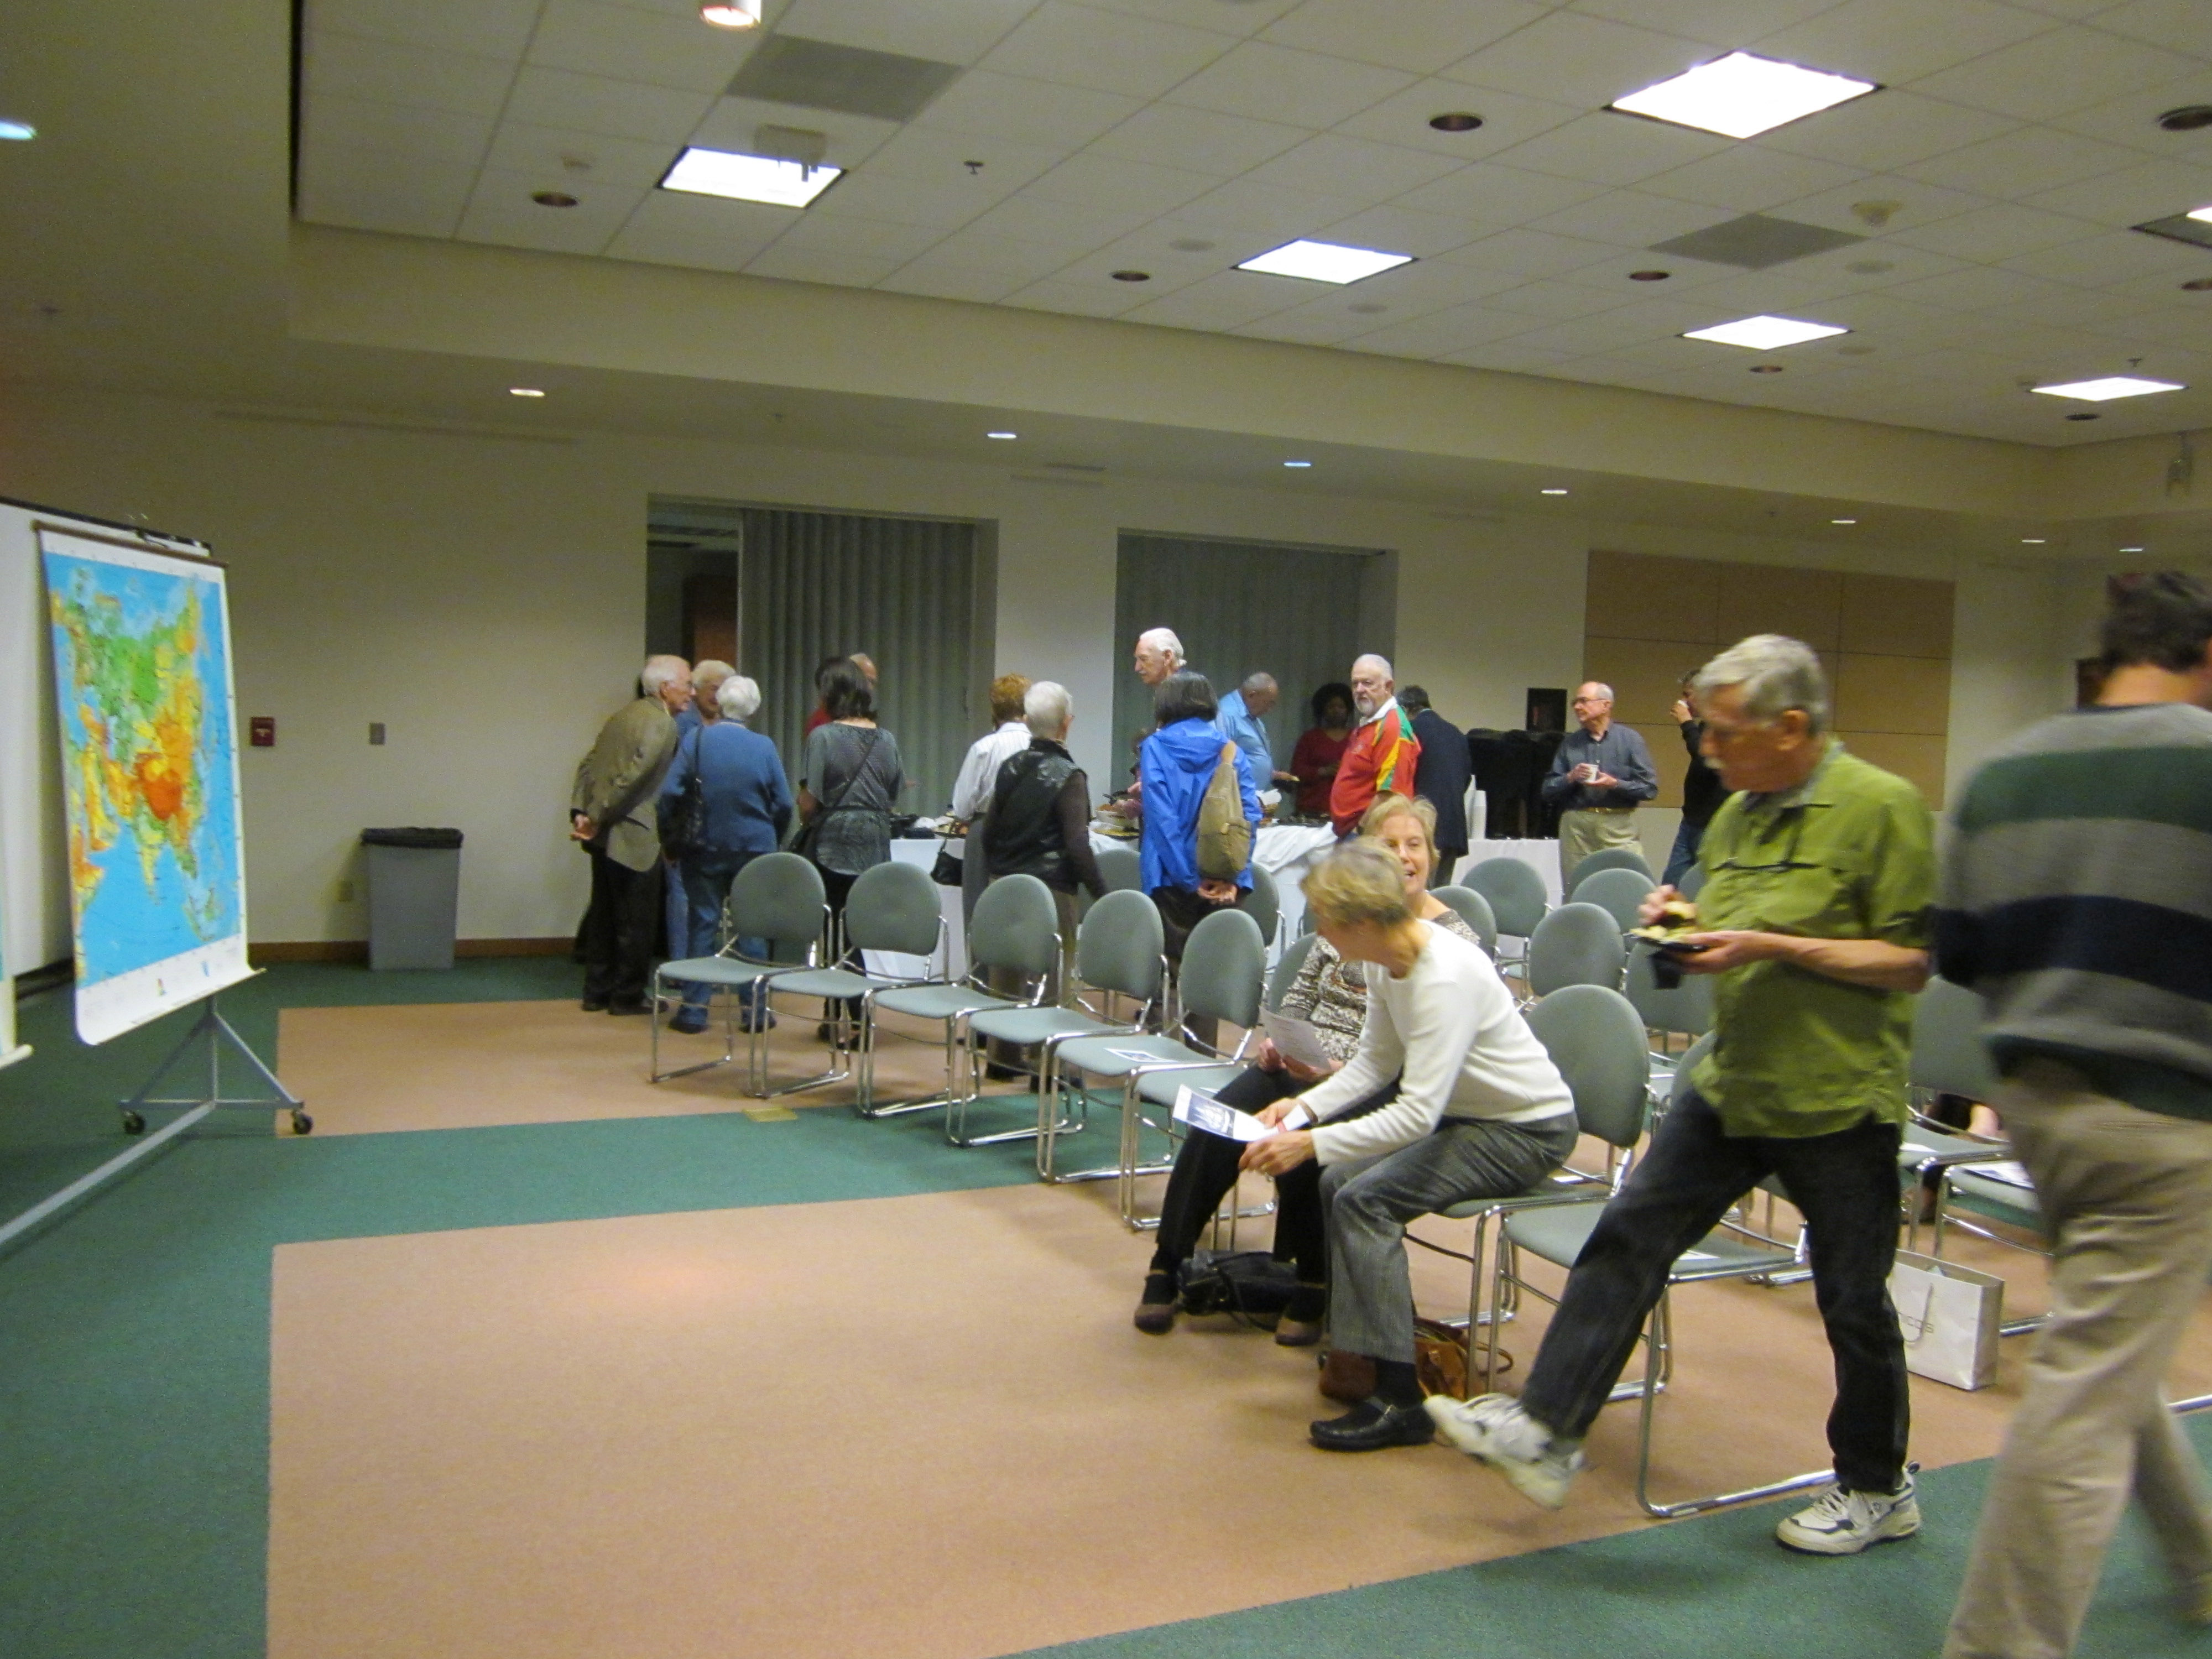 Guests at the opening event gather for lectures and refreshments